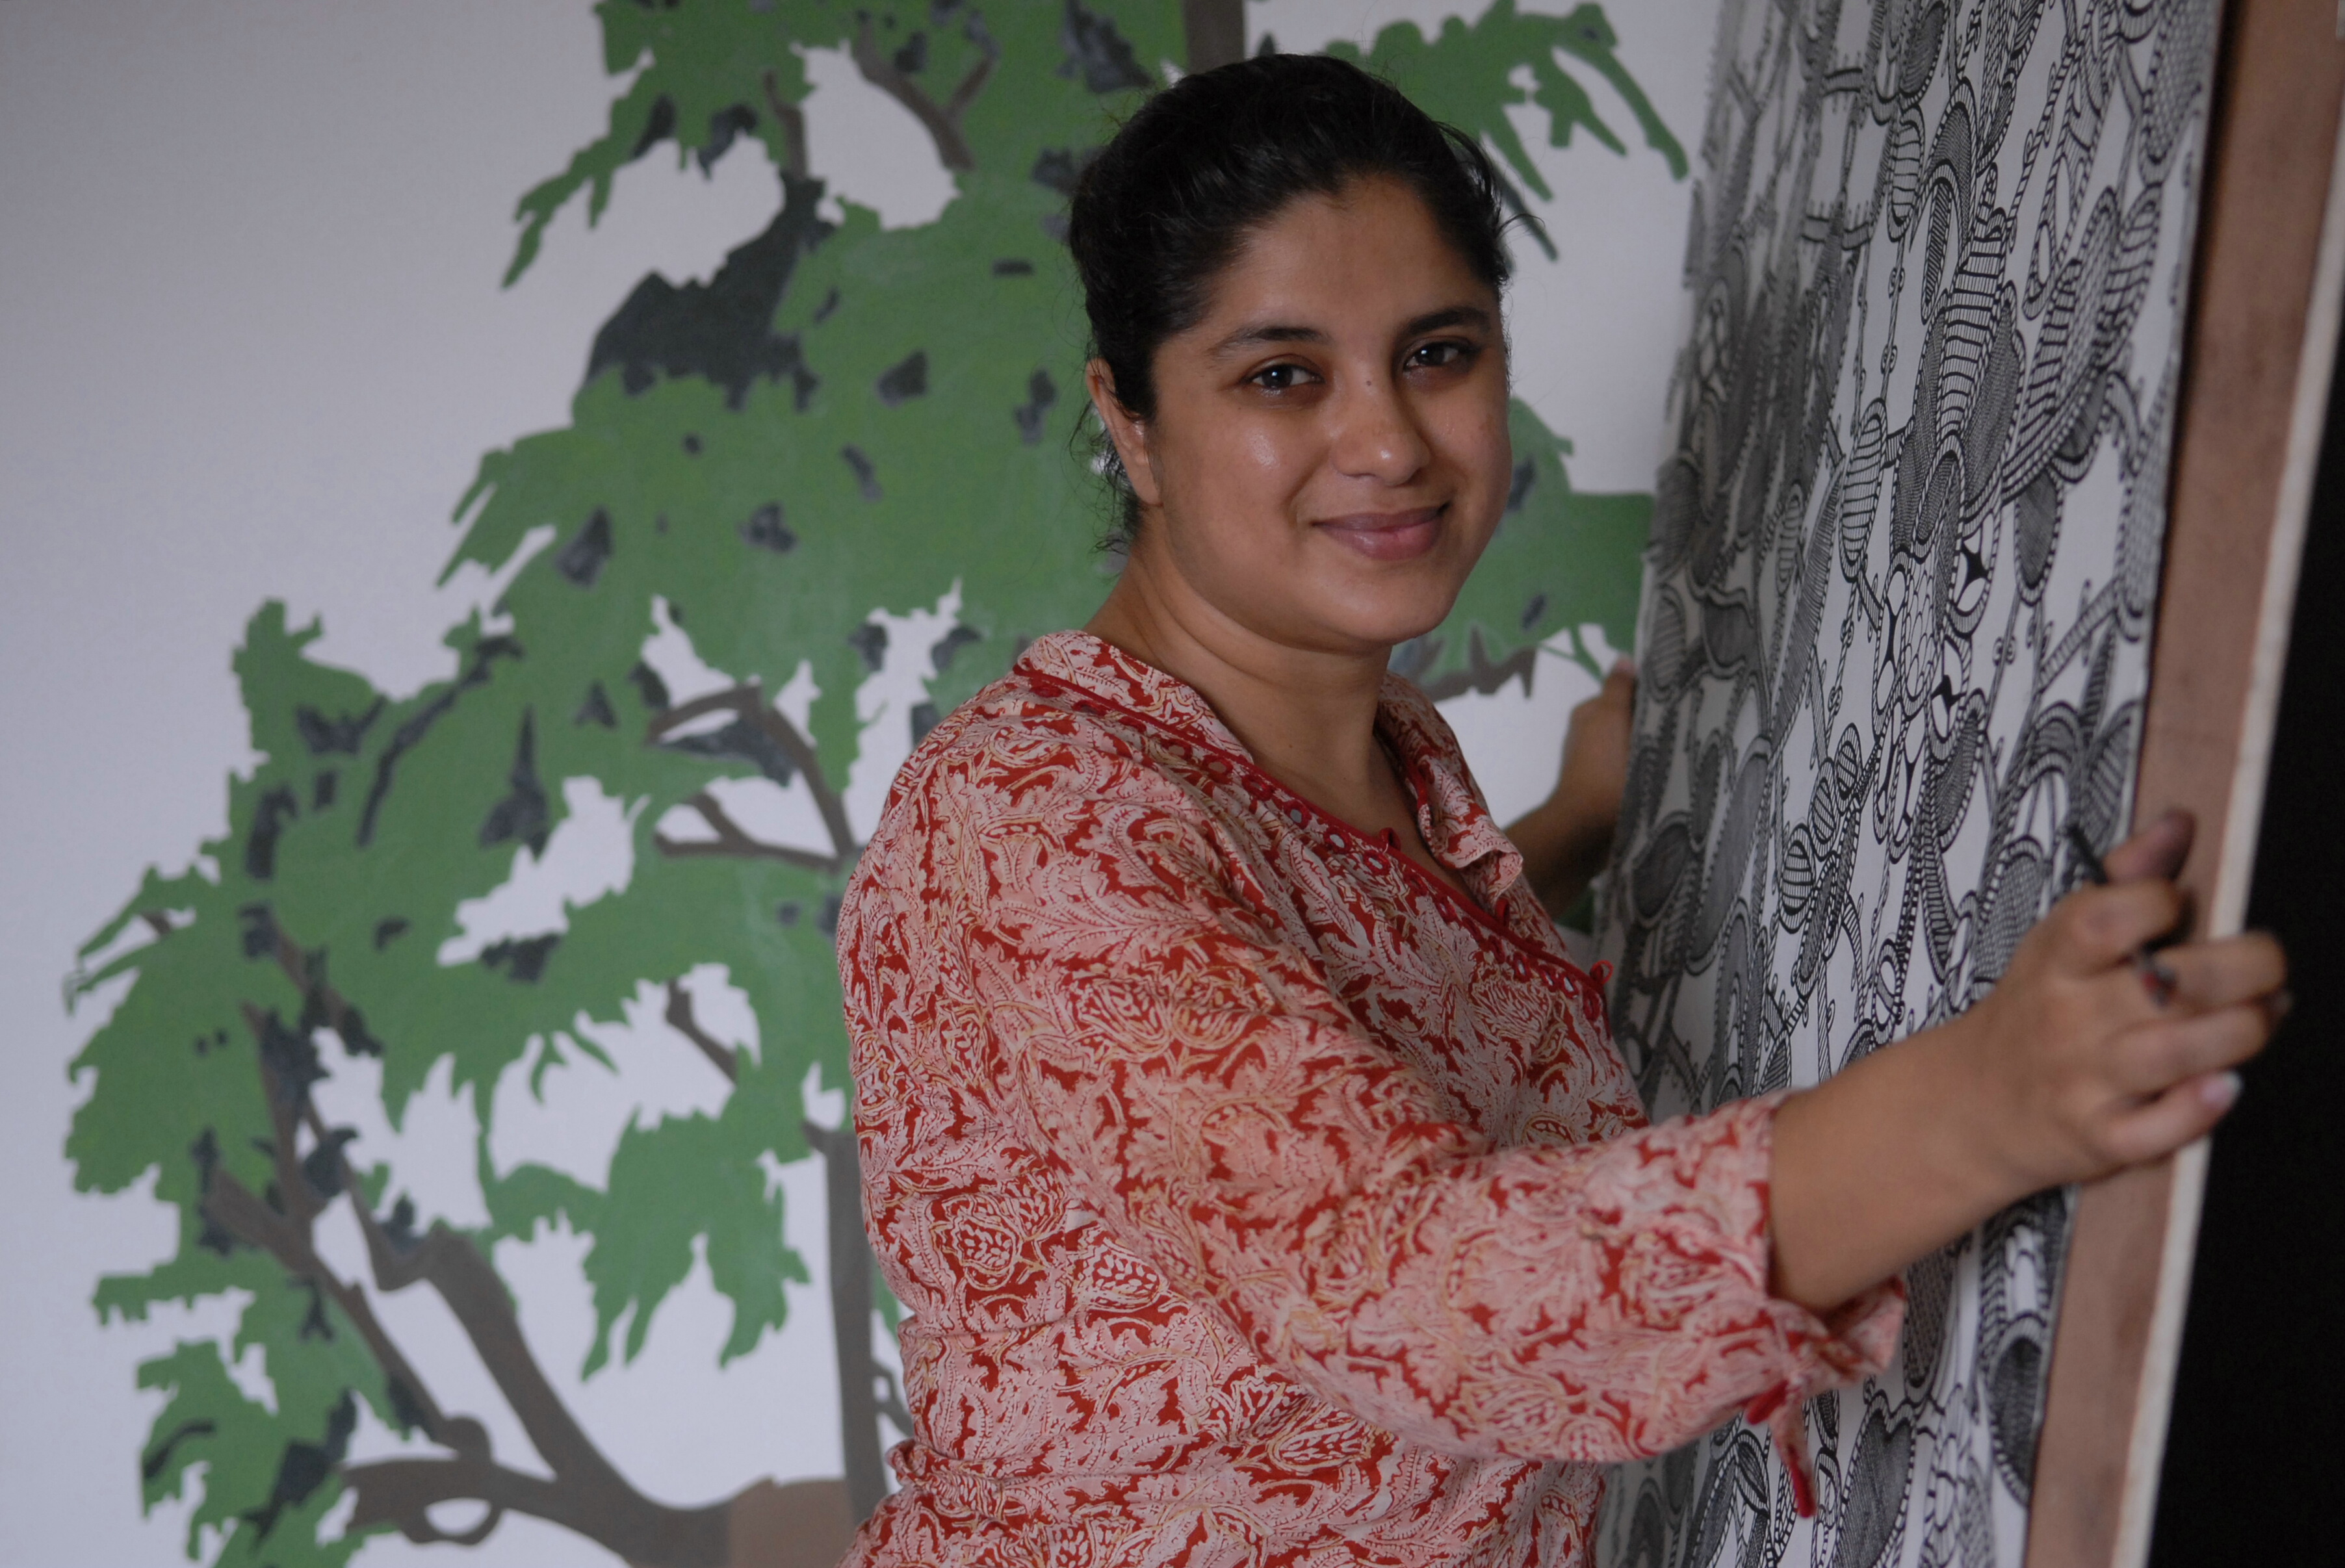 Hema Upadhyay, Artist at her Studio in Mumbai, Maharashtra, India on Aug. 30, 2007.